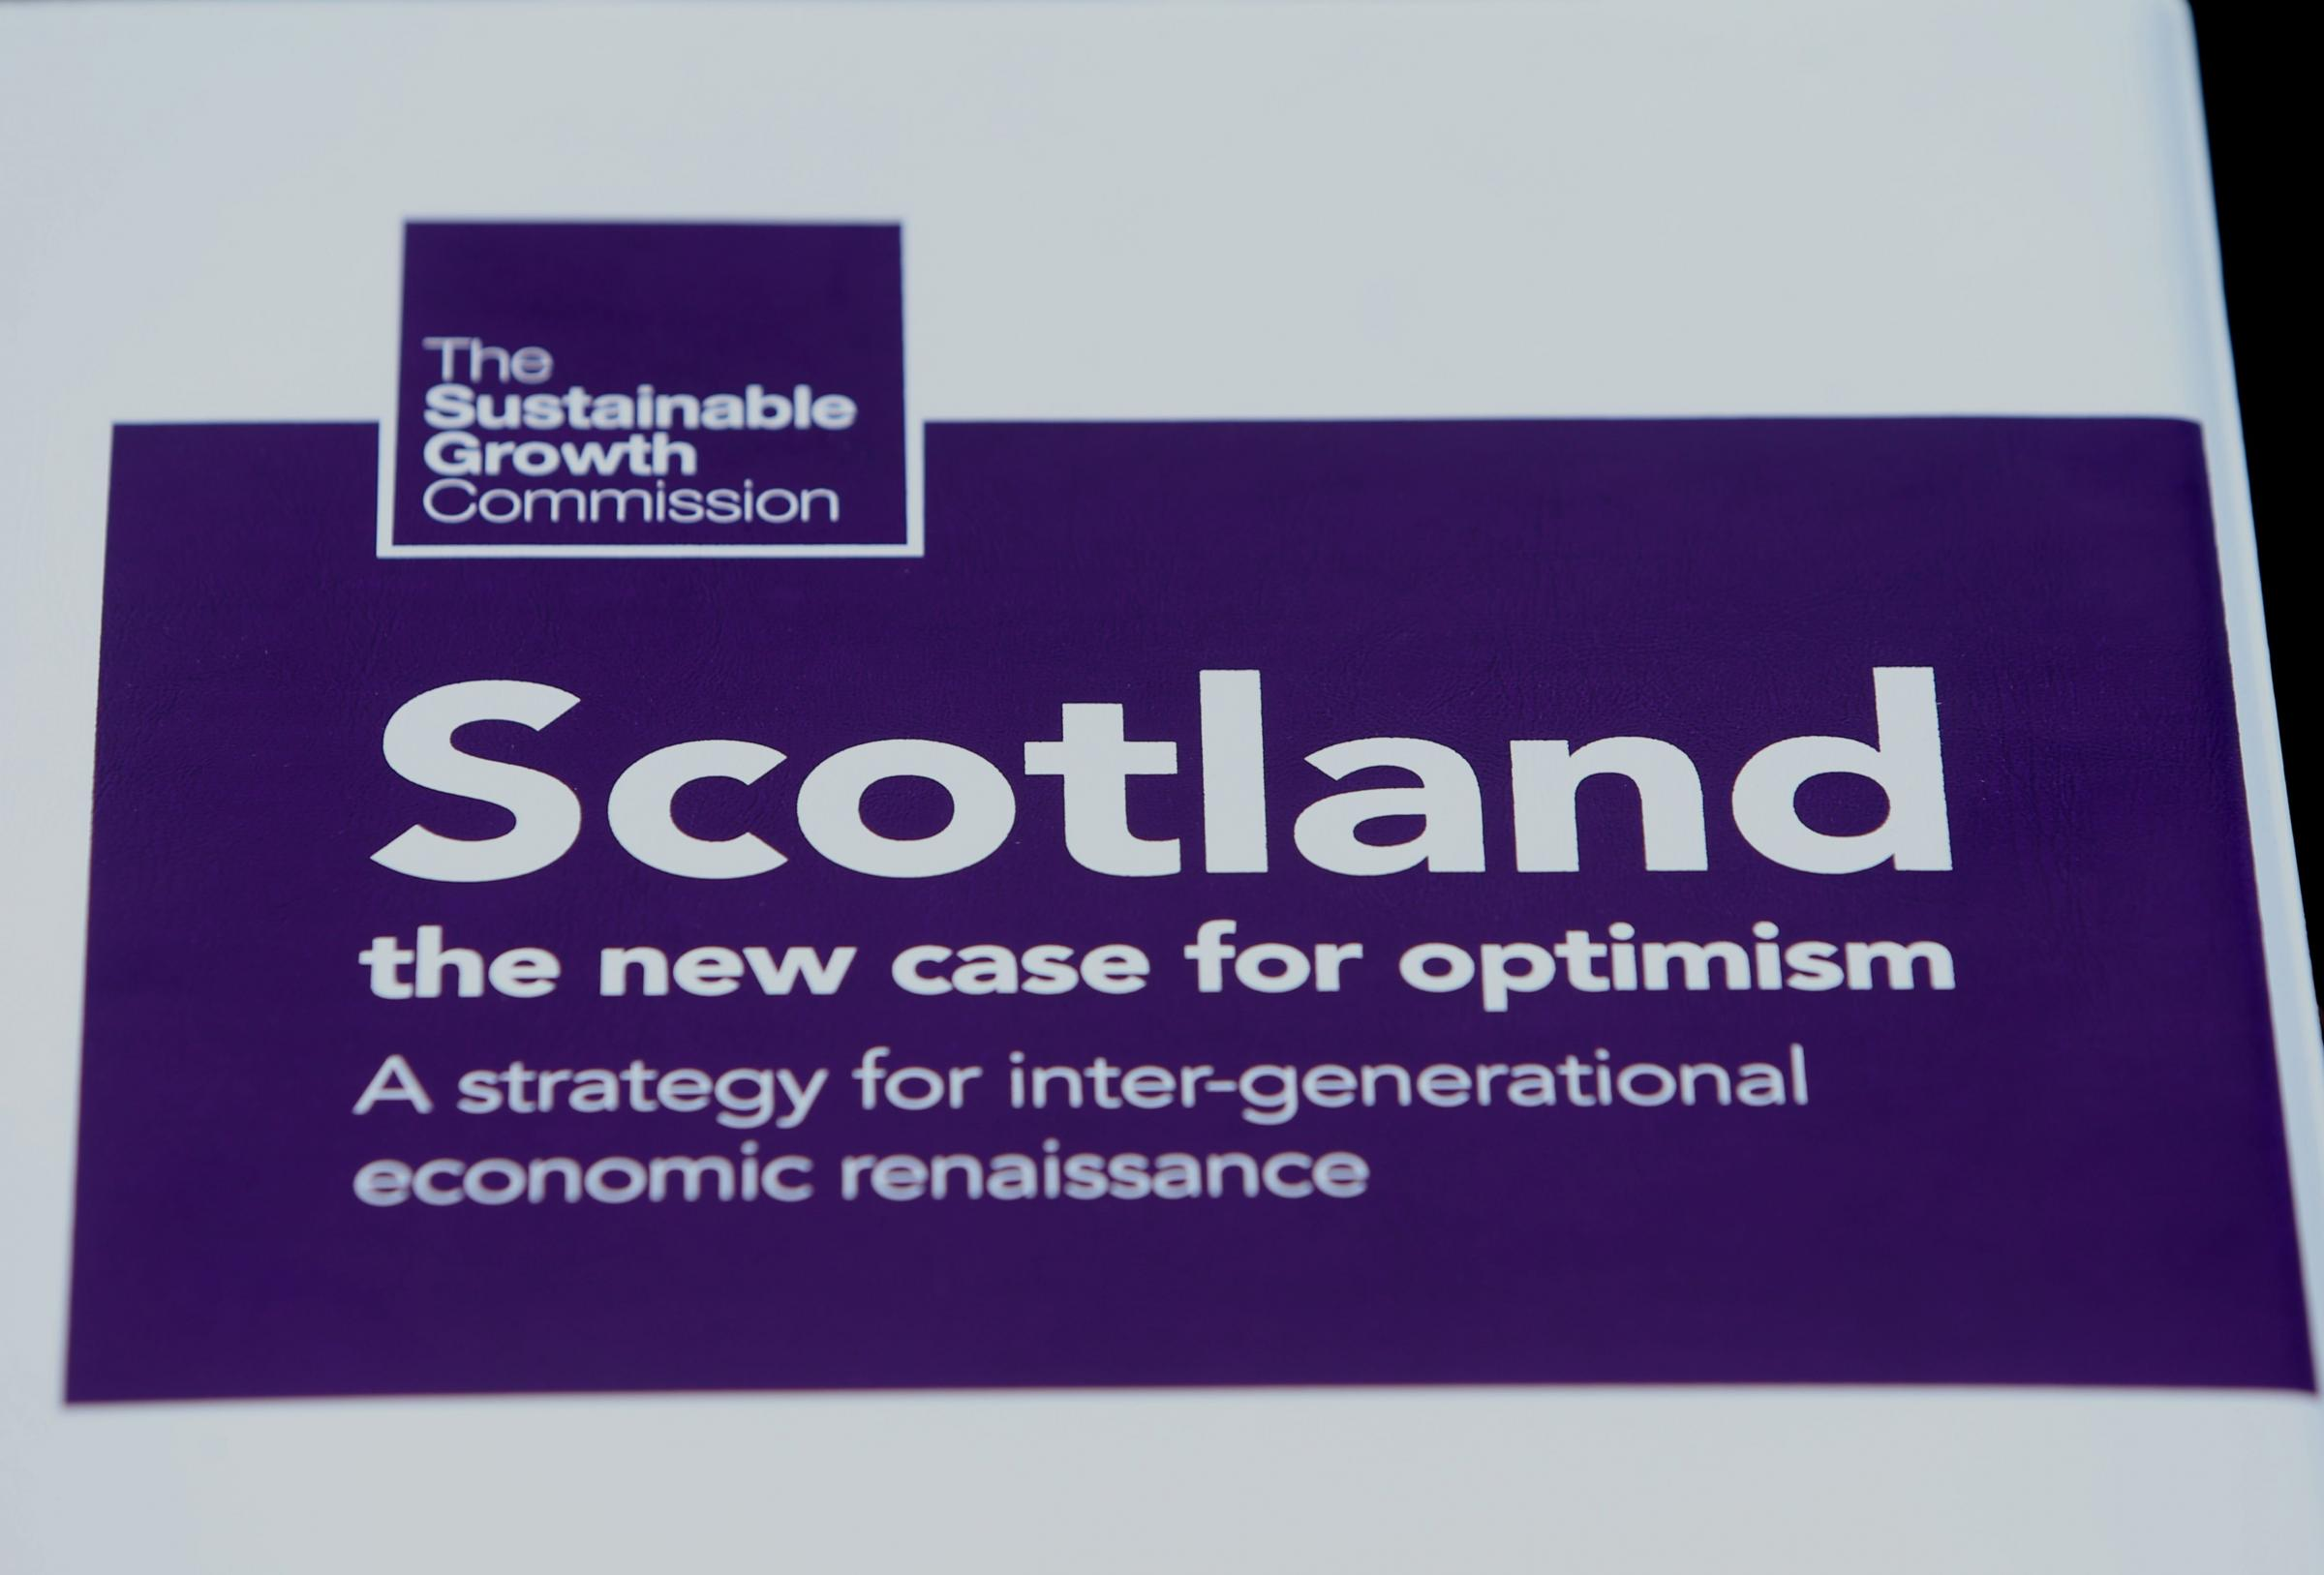 Kevin Hague issued a response to the Scottish Government's Growth Commission report